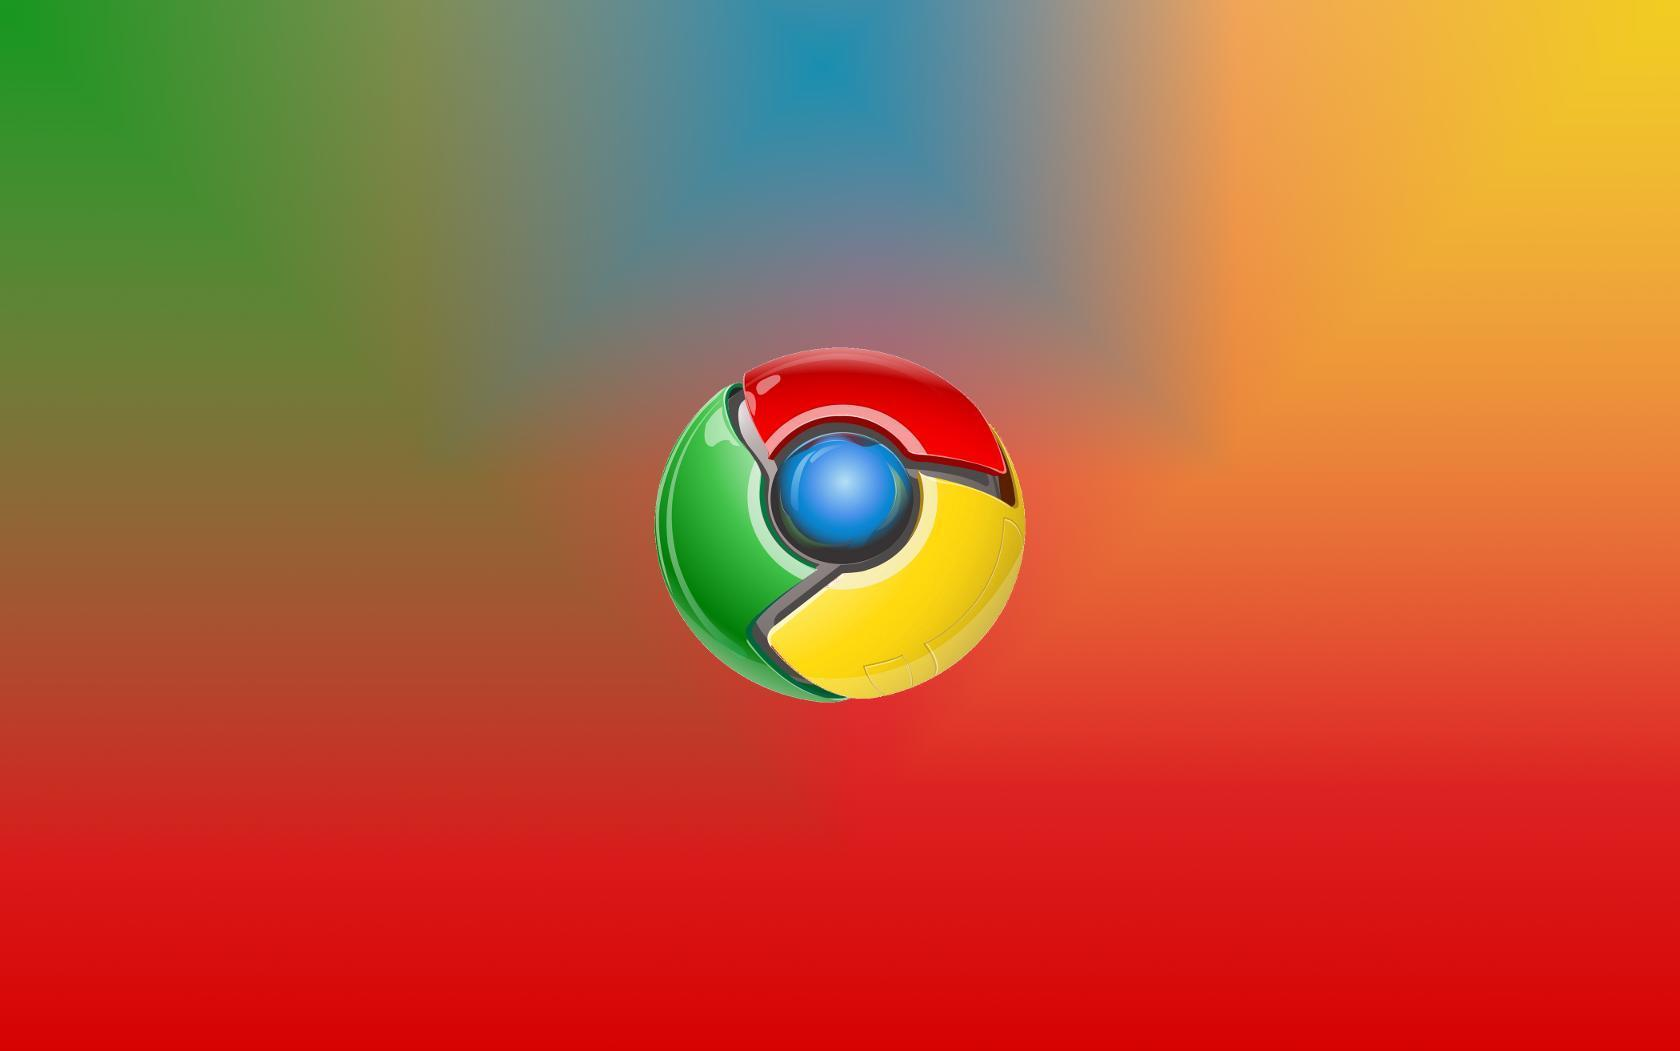 Google Chrome Colorful 5570 HD Wallpaper Pictures | Top Background .